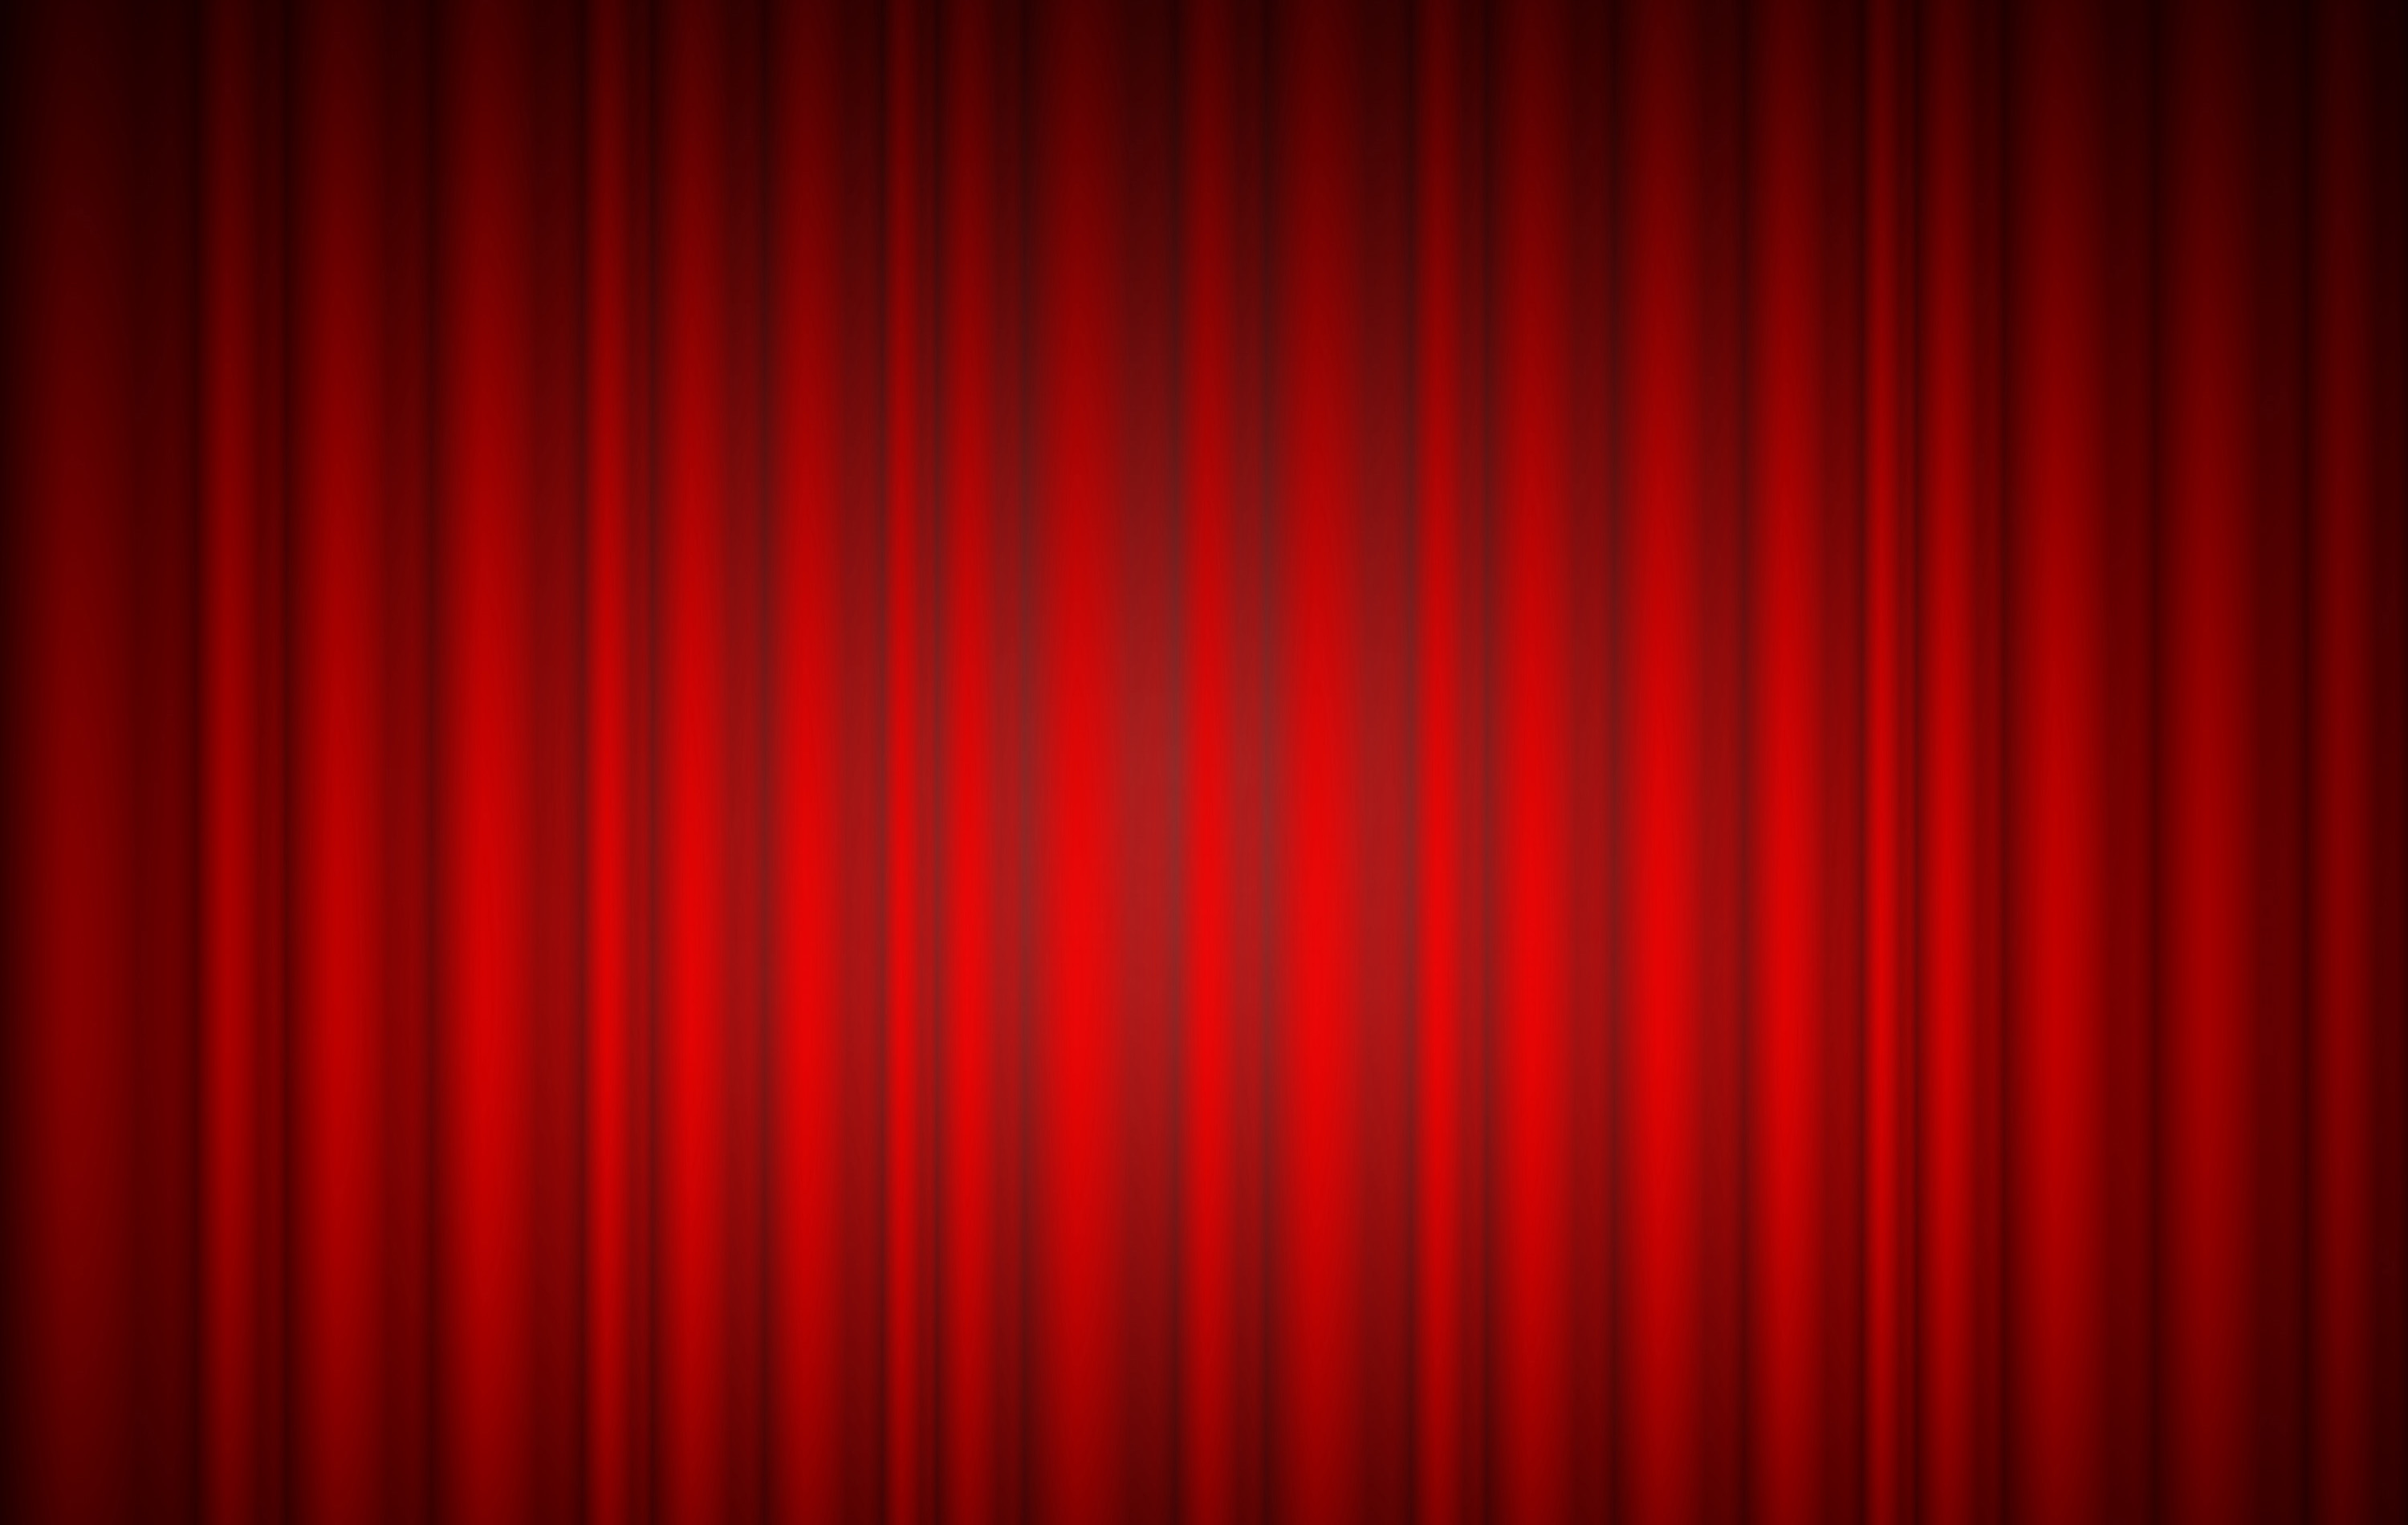 Red stage curtains - Red Curtain Background Powerpoint Red Curtain Motion Background High Resolution Red Curtain Background Made In